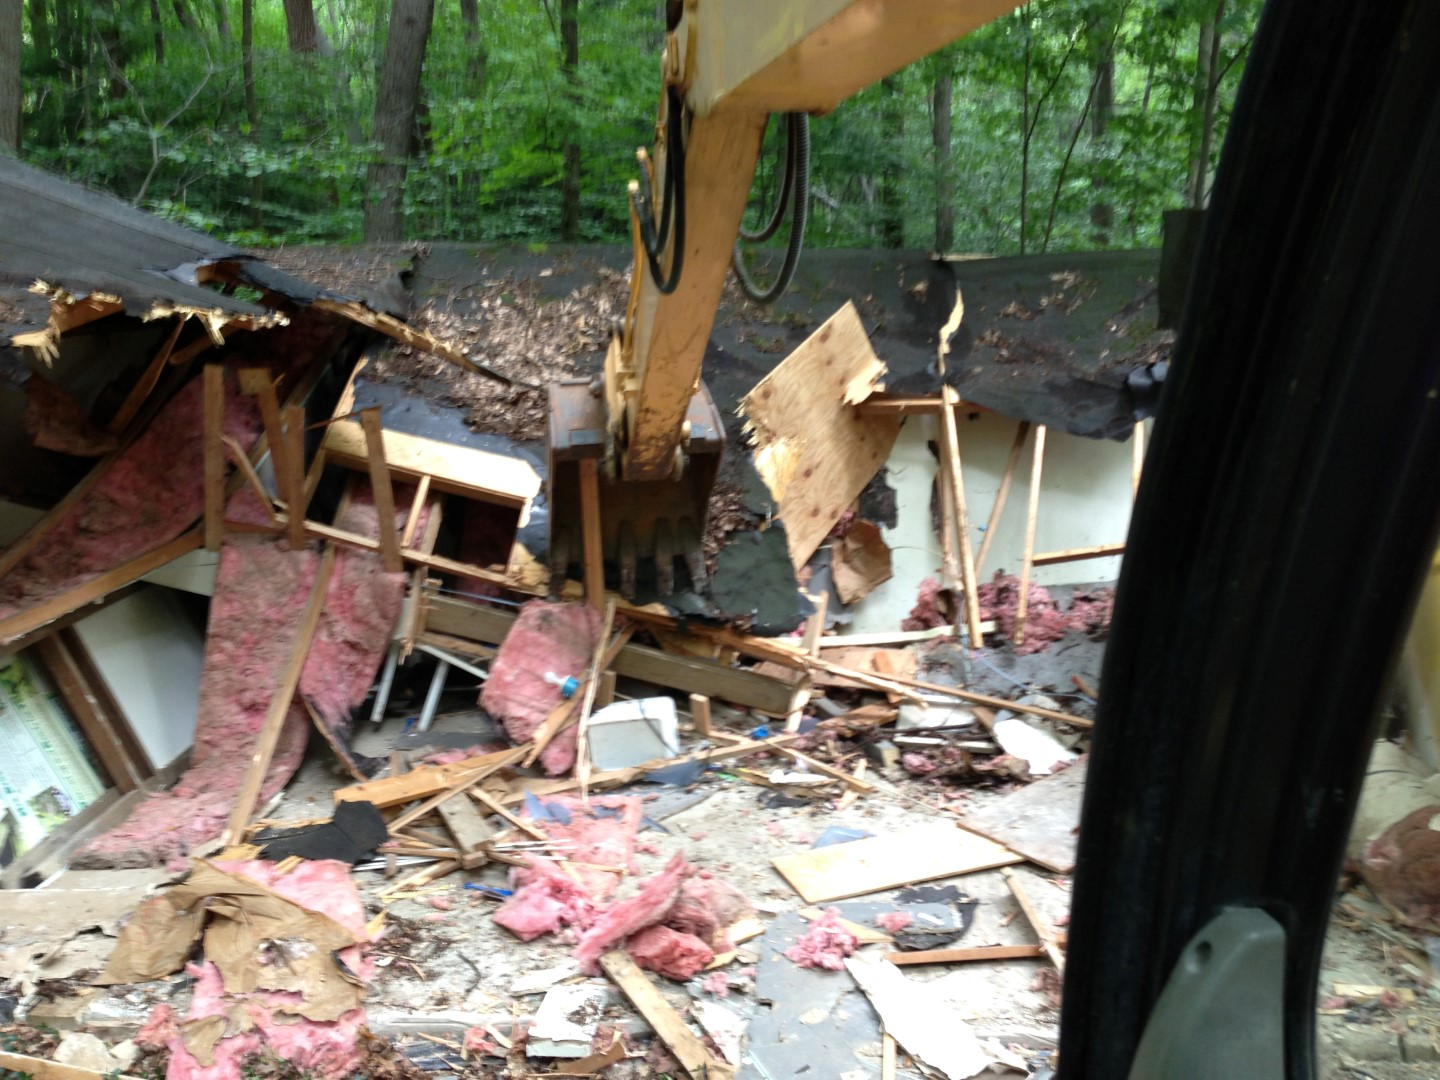 Home tear down Demolition Perry Ohio 44081